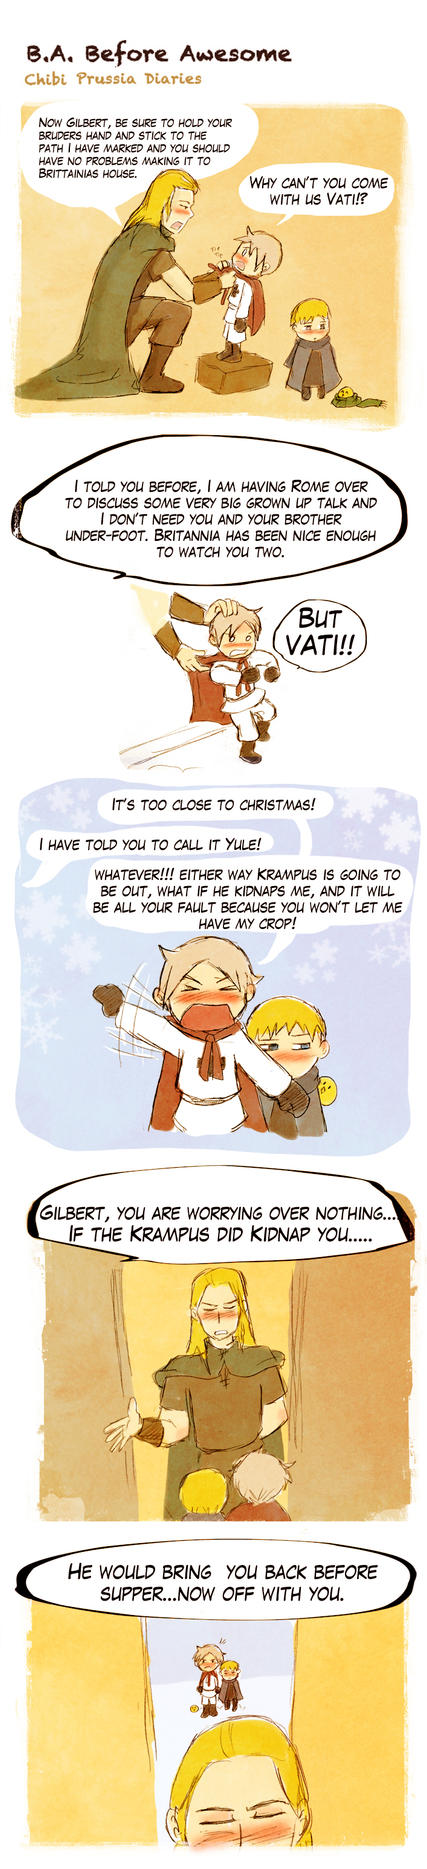 Chibi Prussia Diaries -042- by Arkham-Insanity